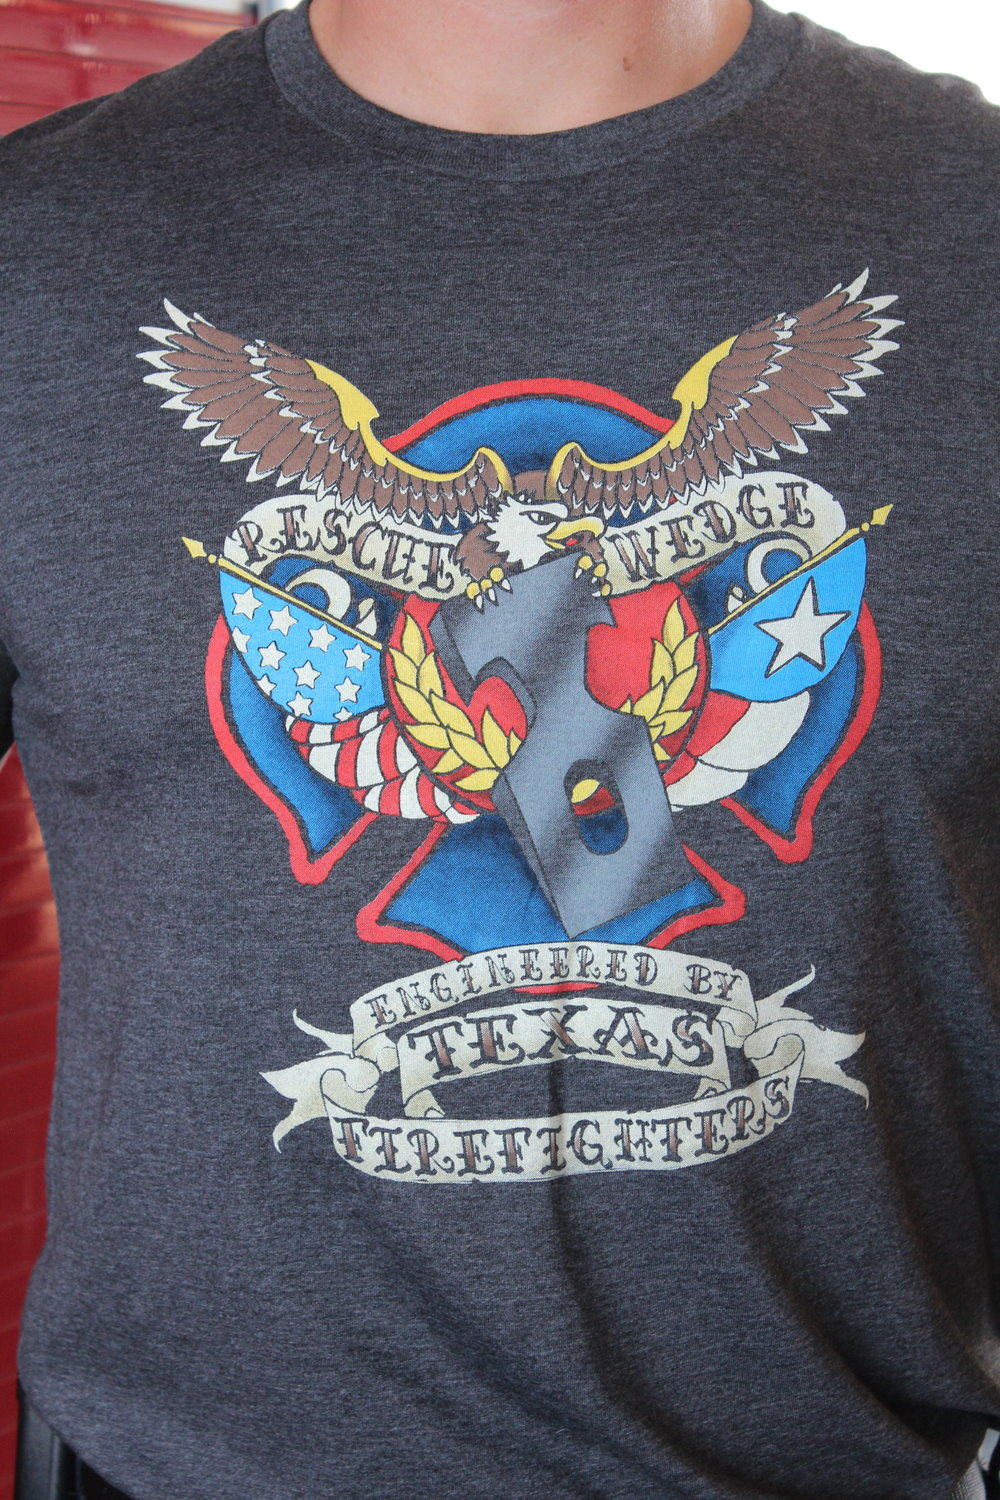 Rescue Wedge - T-shirt   This high quality tri-blended charcoal t-shirt features our logo, the American Eagle grasping the Rescue Wedge with its sharp talons. Designed by Caitlin Hamby, the shirt comes in multiple sizes.   COST: $25.00